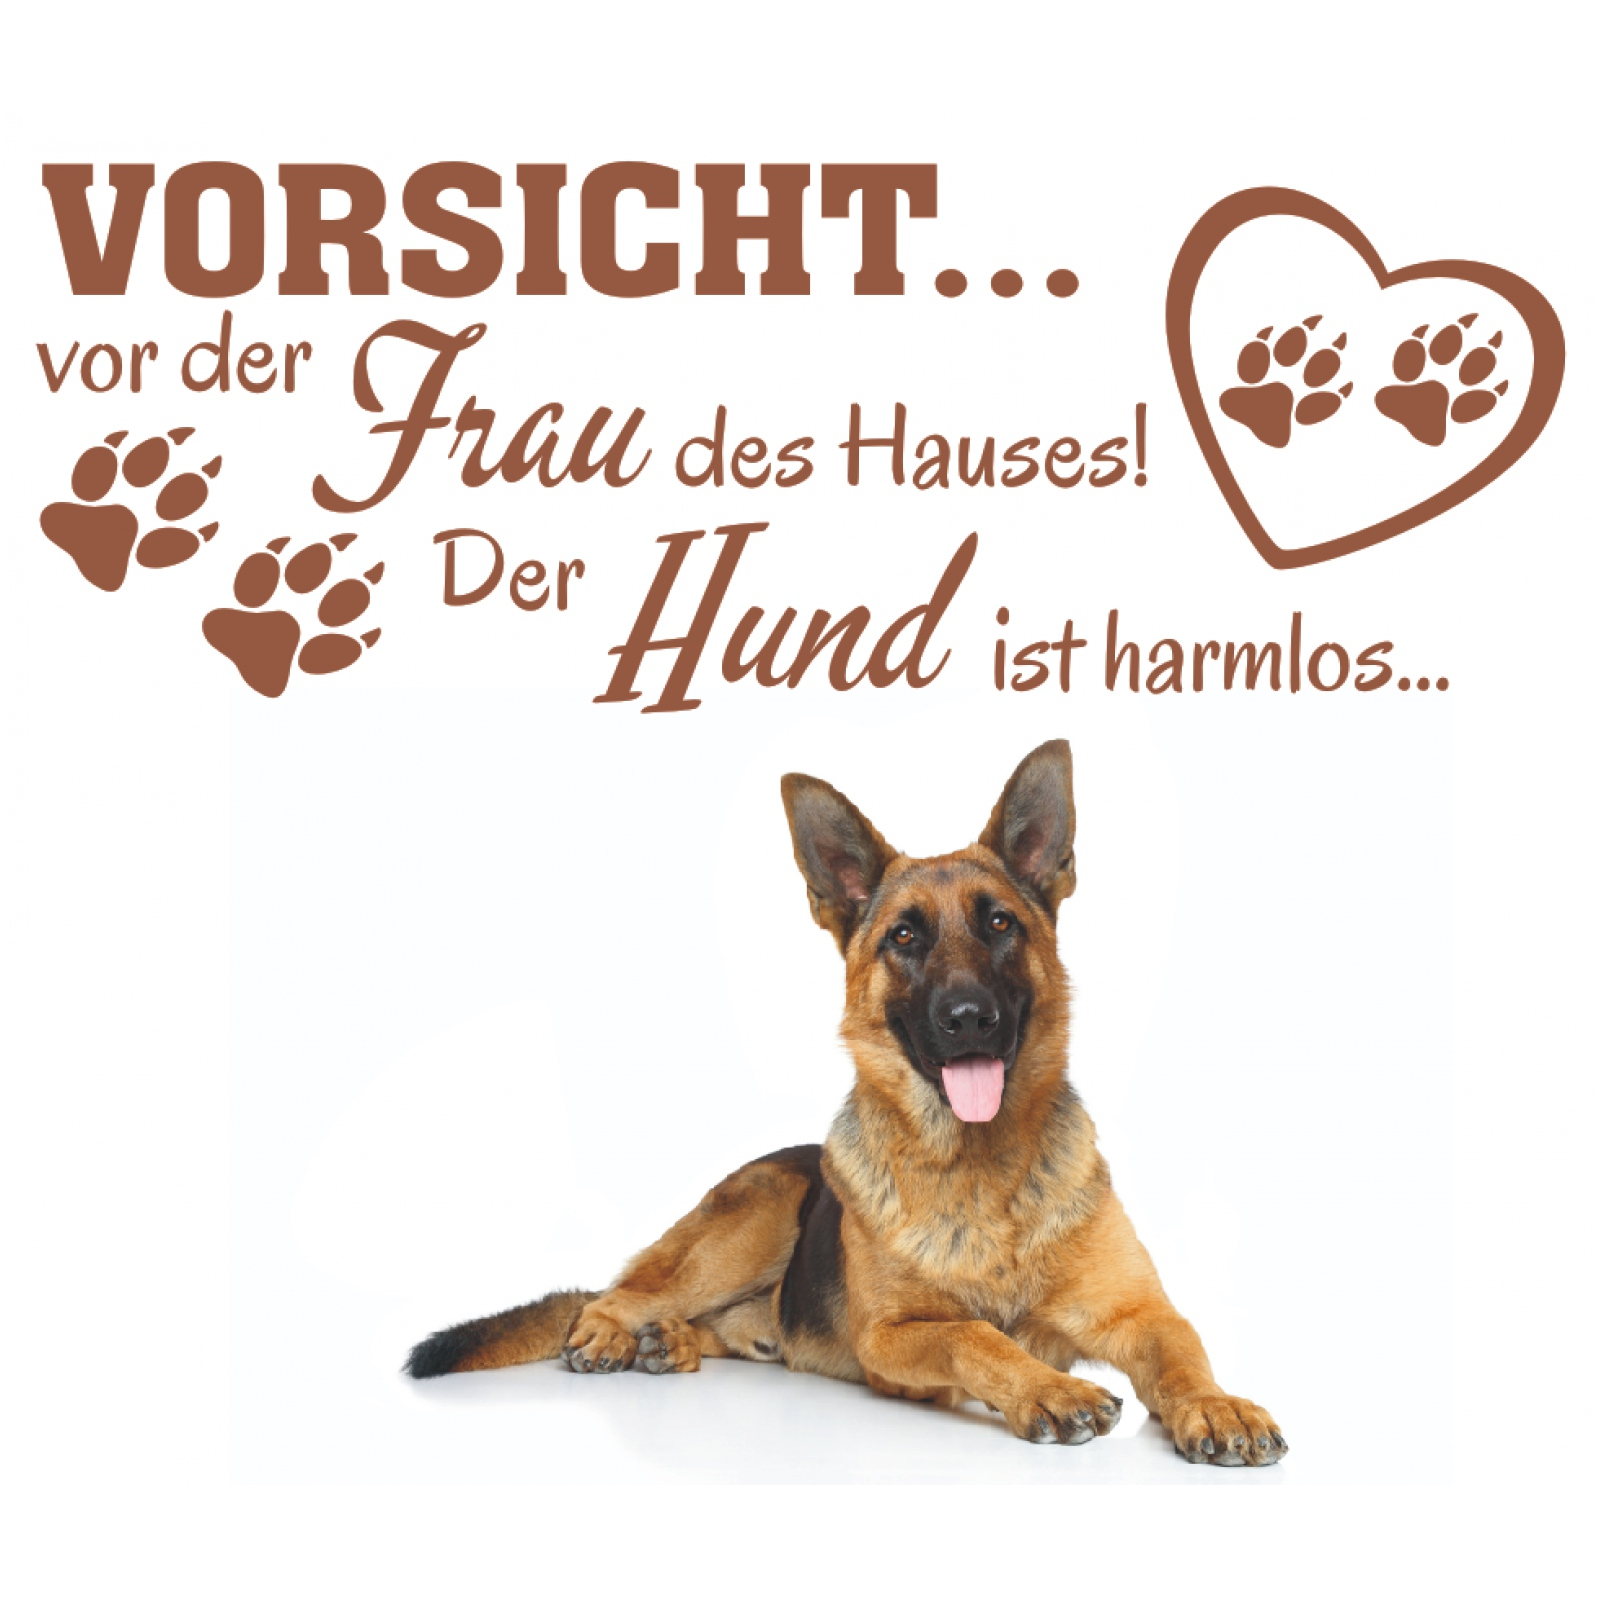 wandtattoo spruch vorsicht vor frau hund harmlos wandaufkleber wandsticker 1 ebay. Black Bedroom Furniture Sets. Home Design Ideas